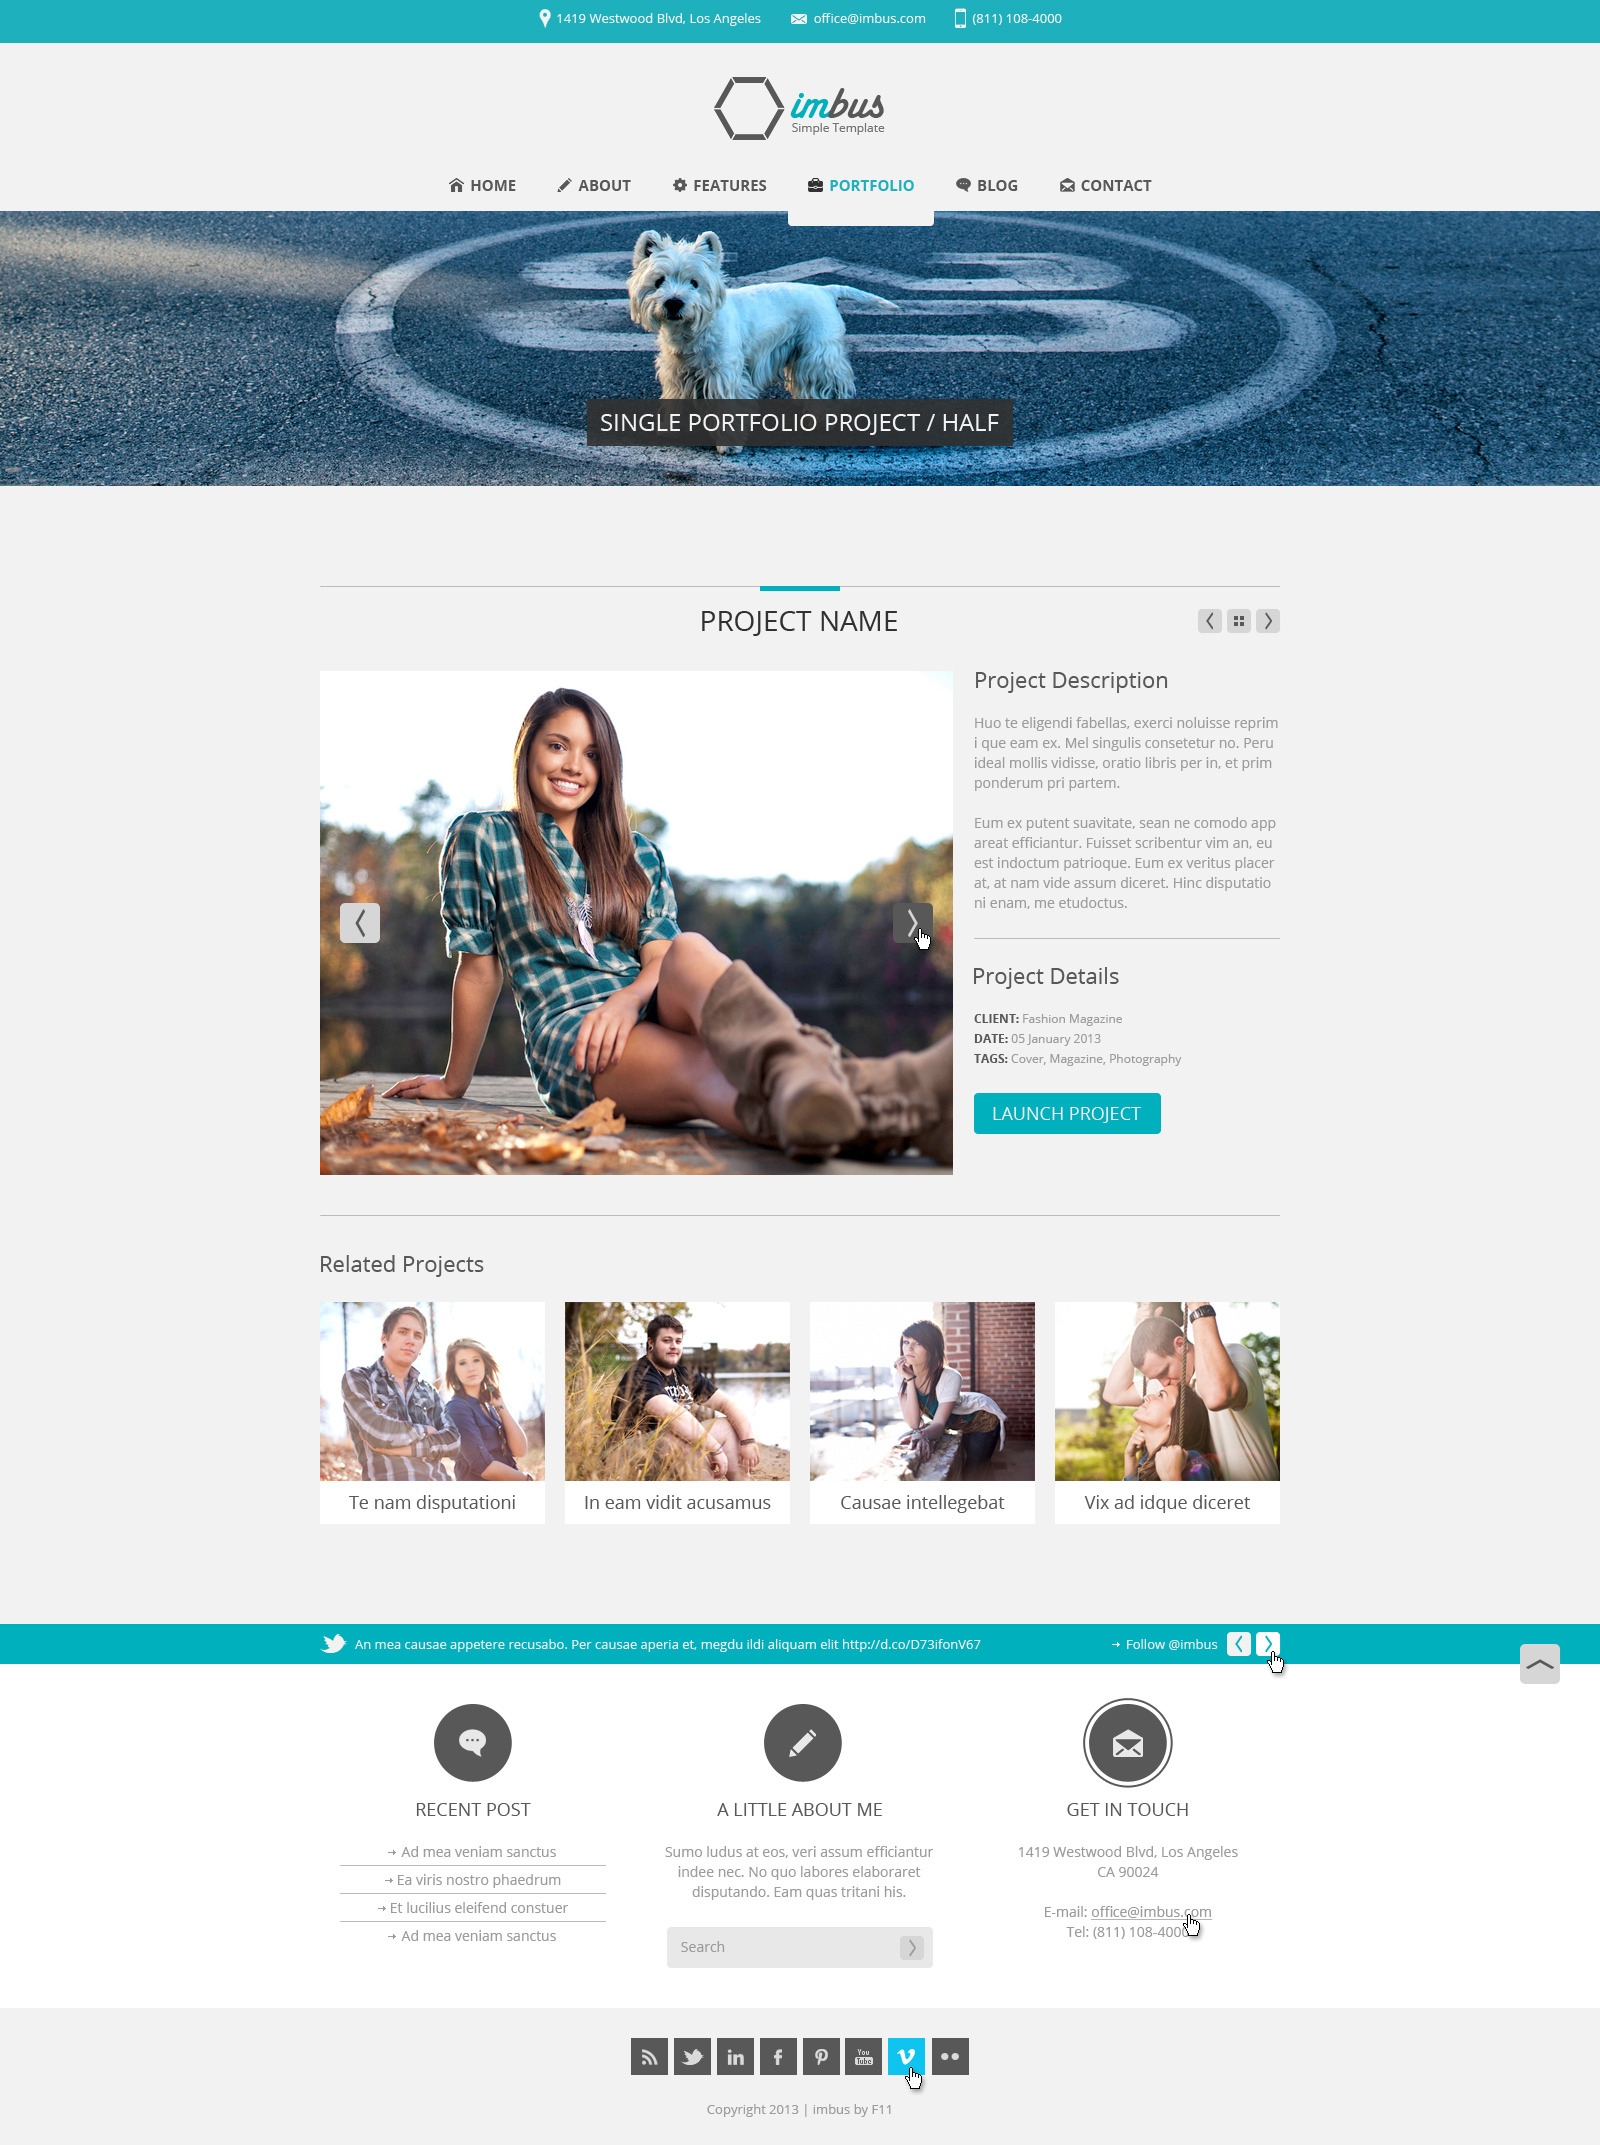 imbus - Simple PSD Template - imbus - Simple PSD Template.  Portfolio single project - half.